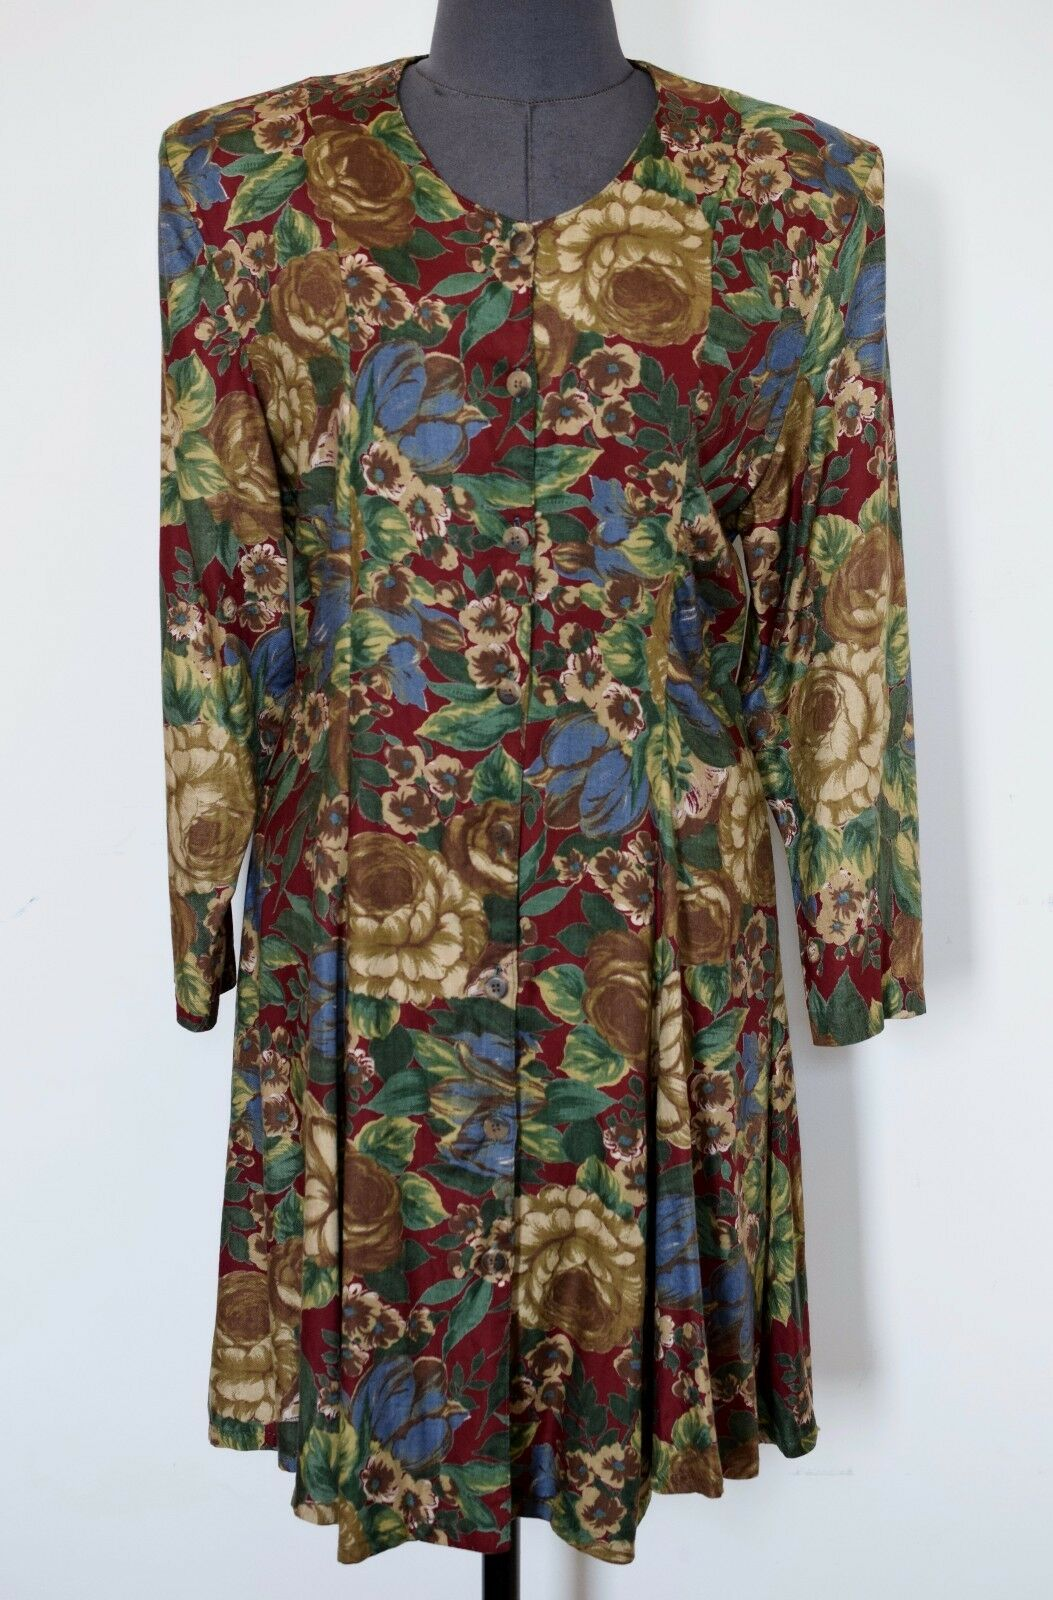 MASKIT Israel Vintage Button-Front Mini Dress Tunic Viscose Floral Print, Größe S